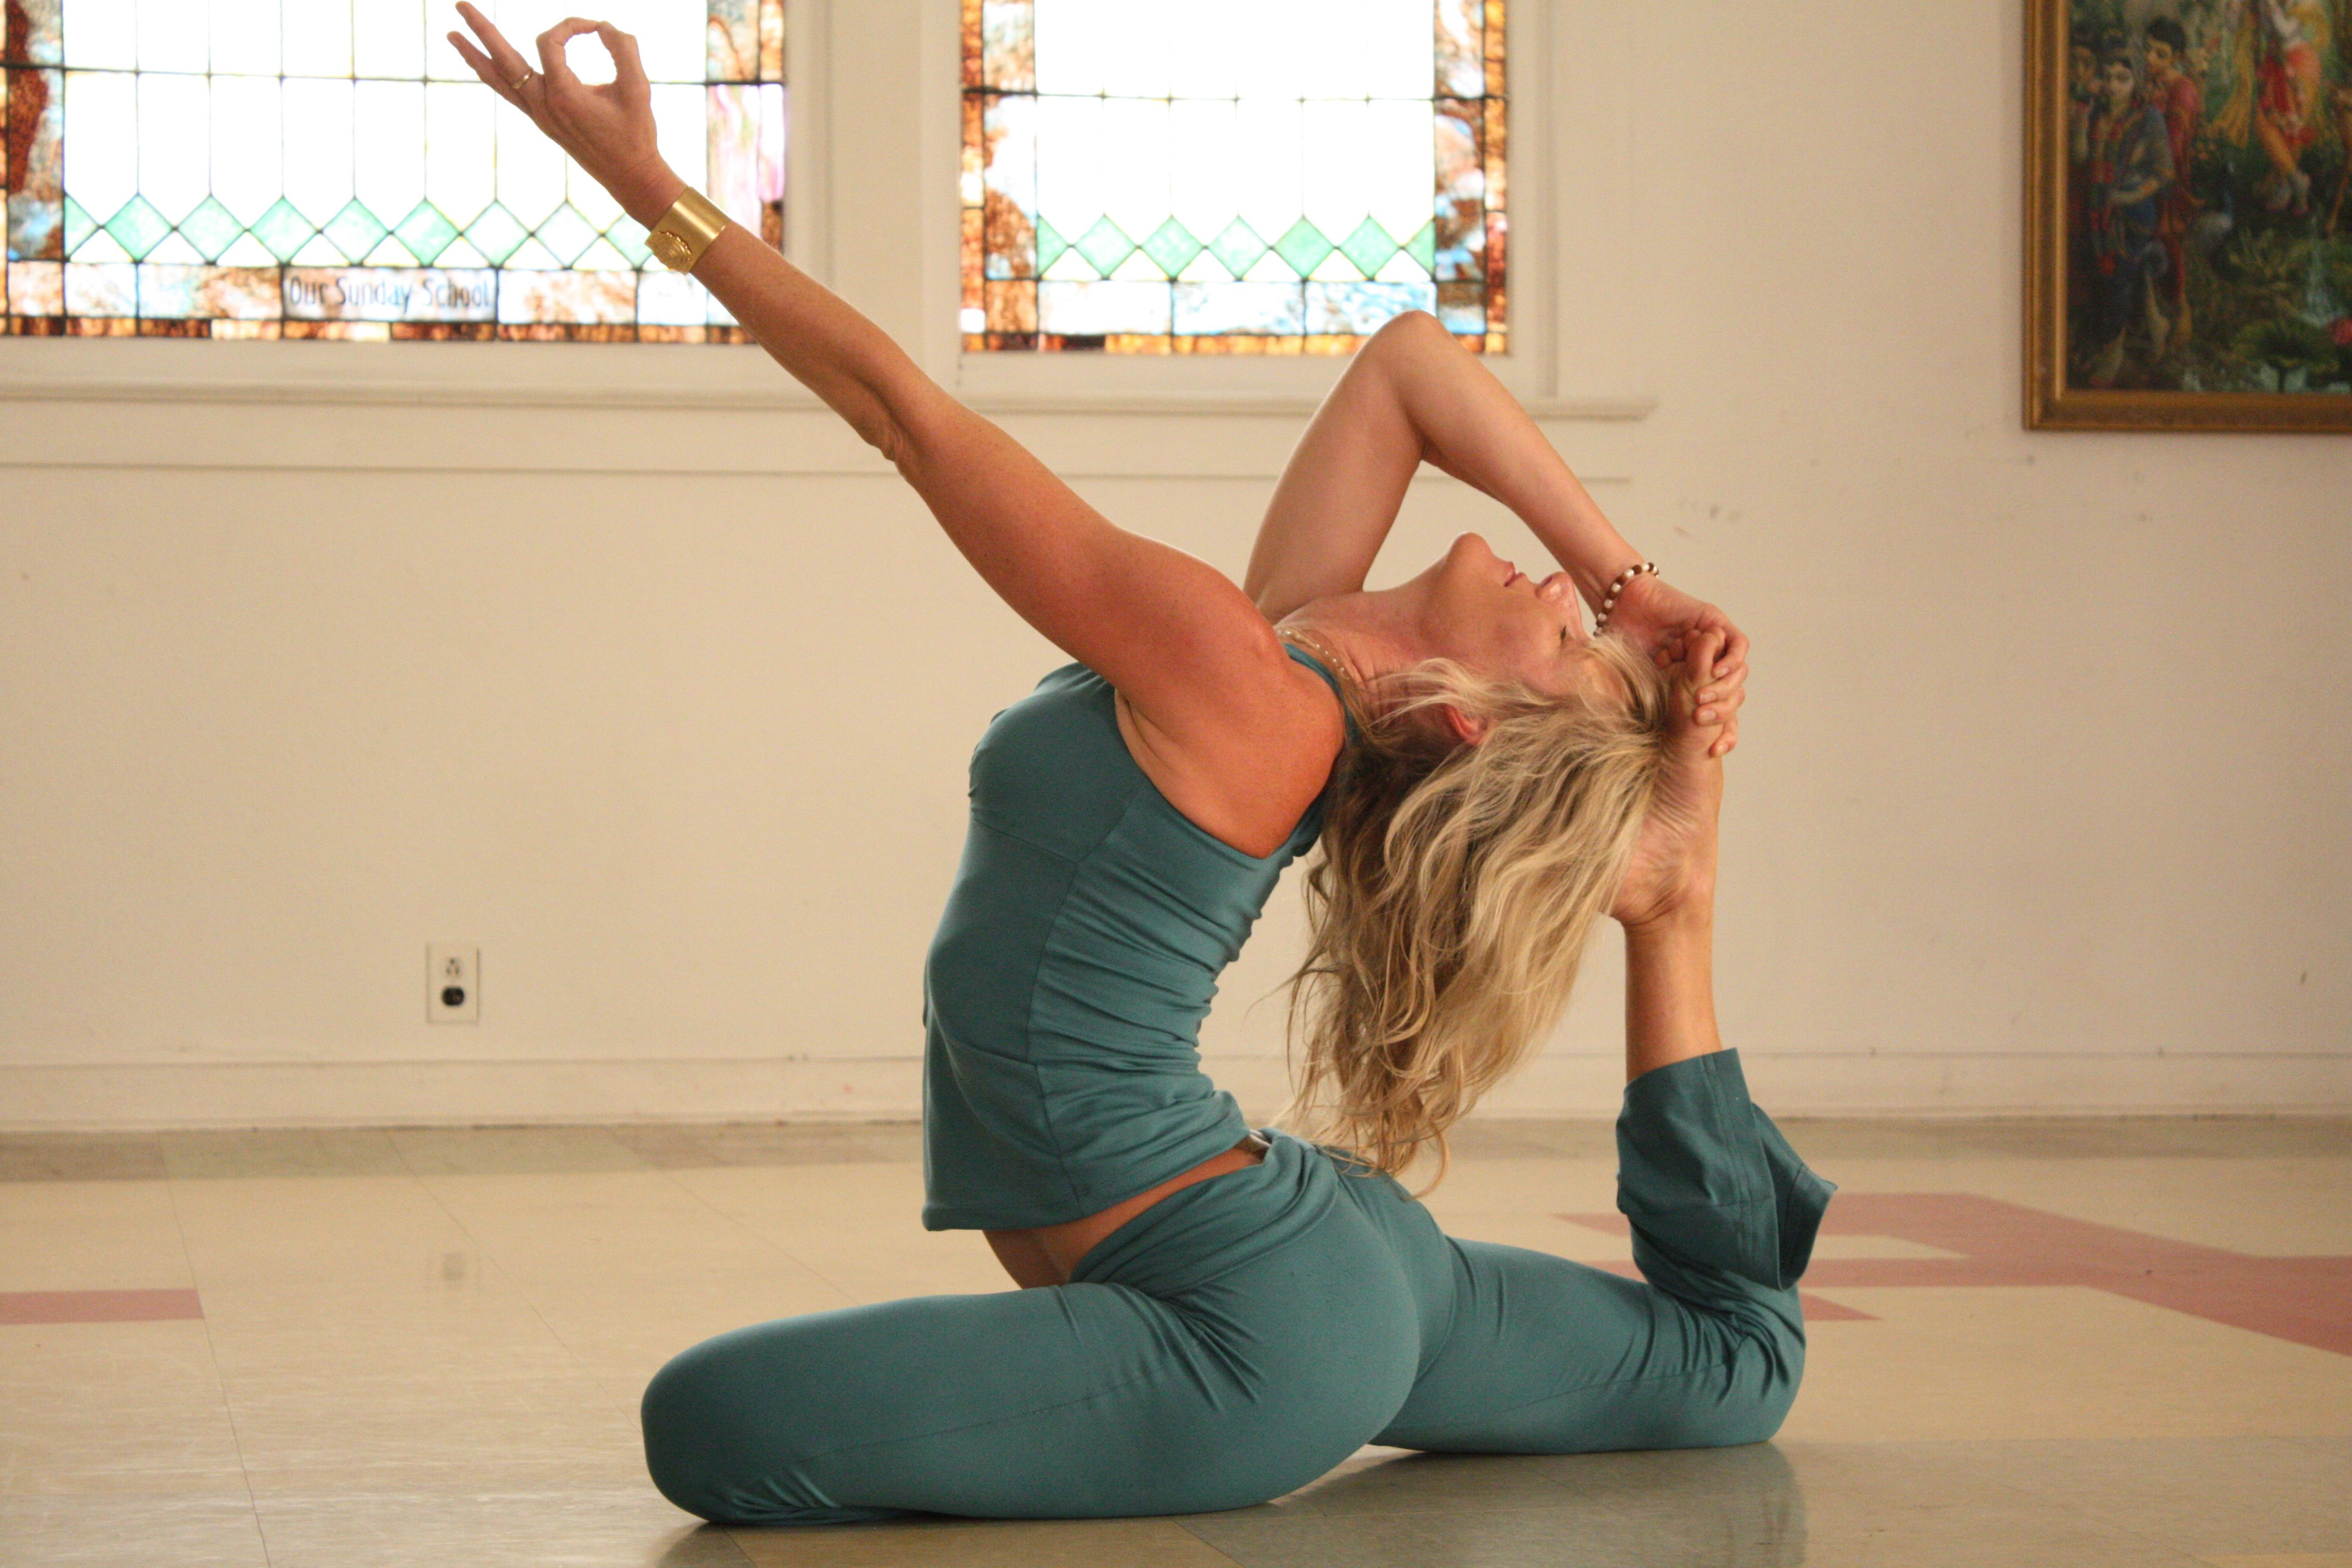 An image from Yogawoman